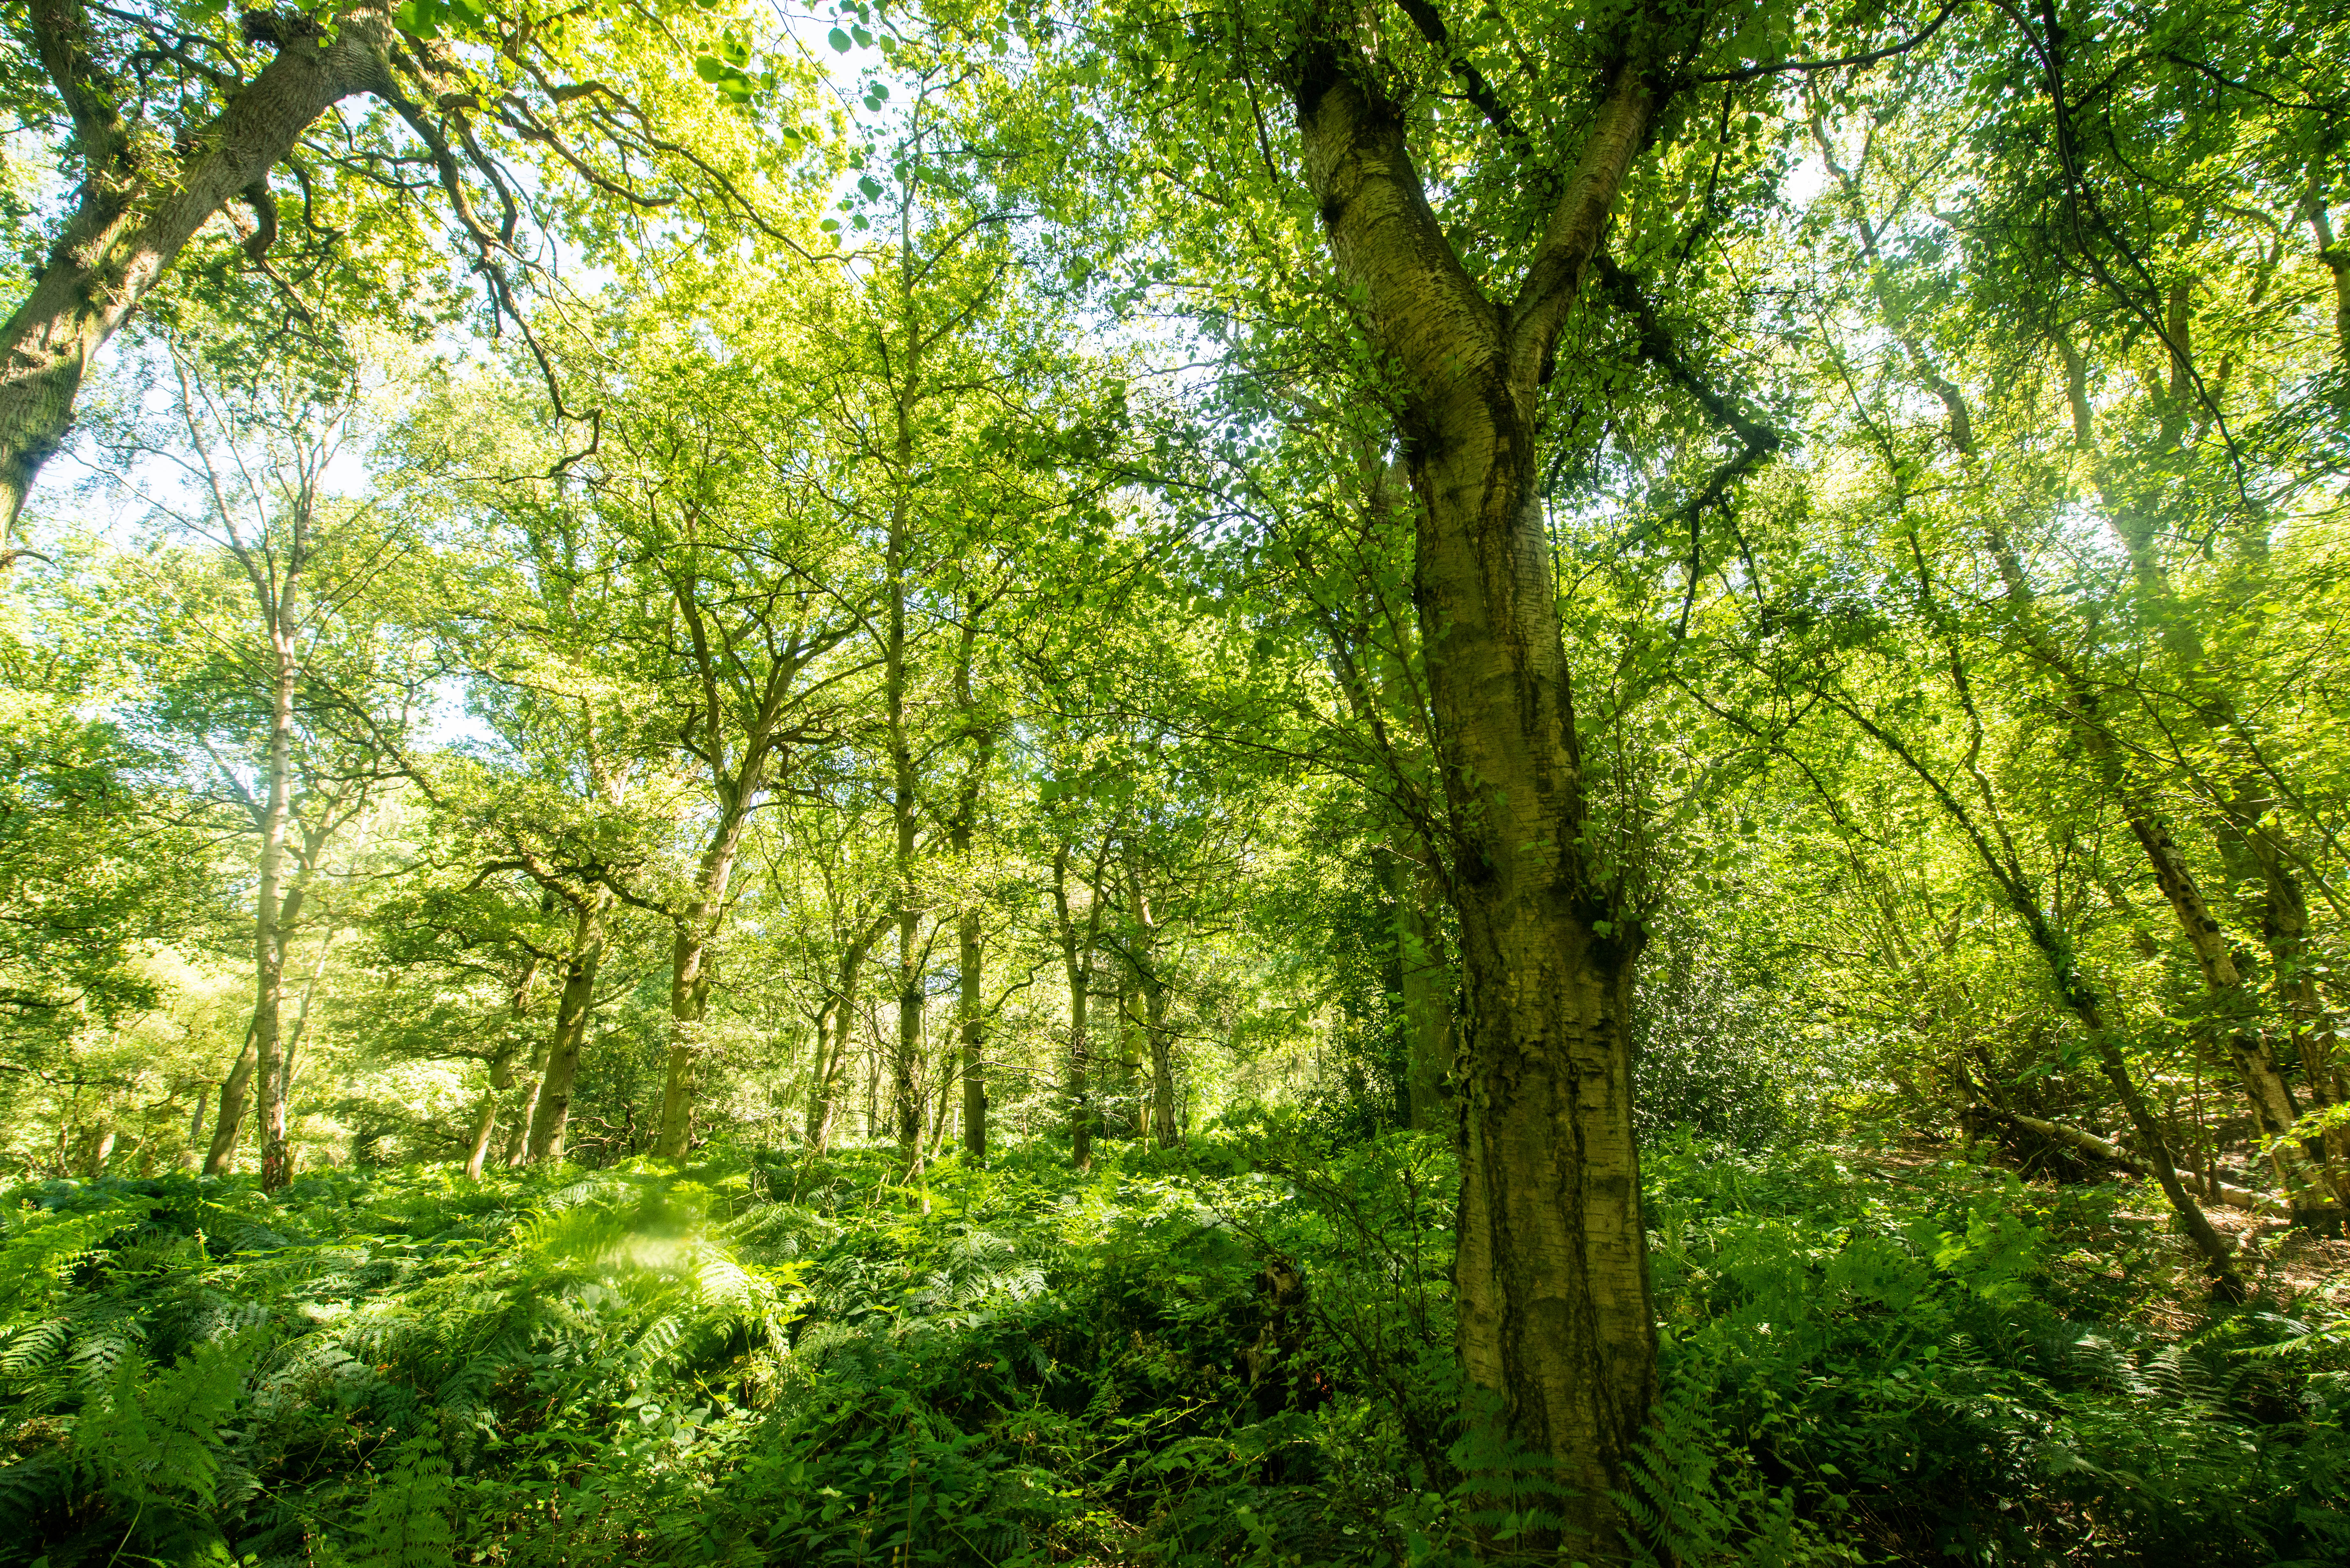 Broadwells Wood, Warwickshire, will also be affected, the Woodland Trust said (Philip Formby/Woodland Trust/PA)